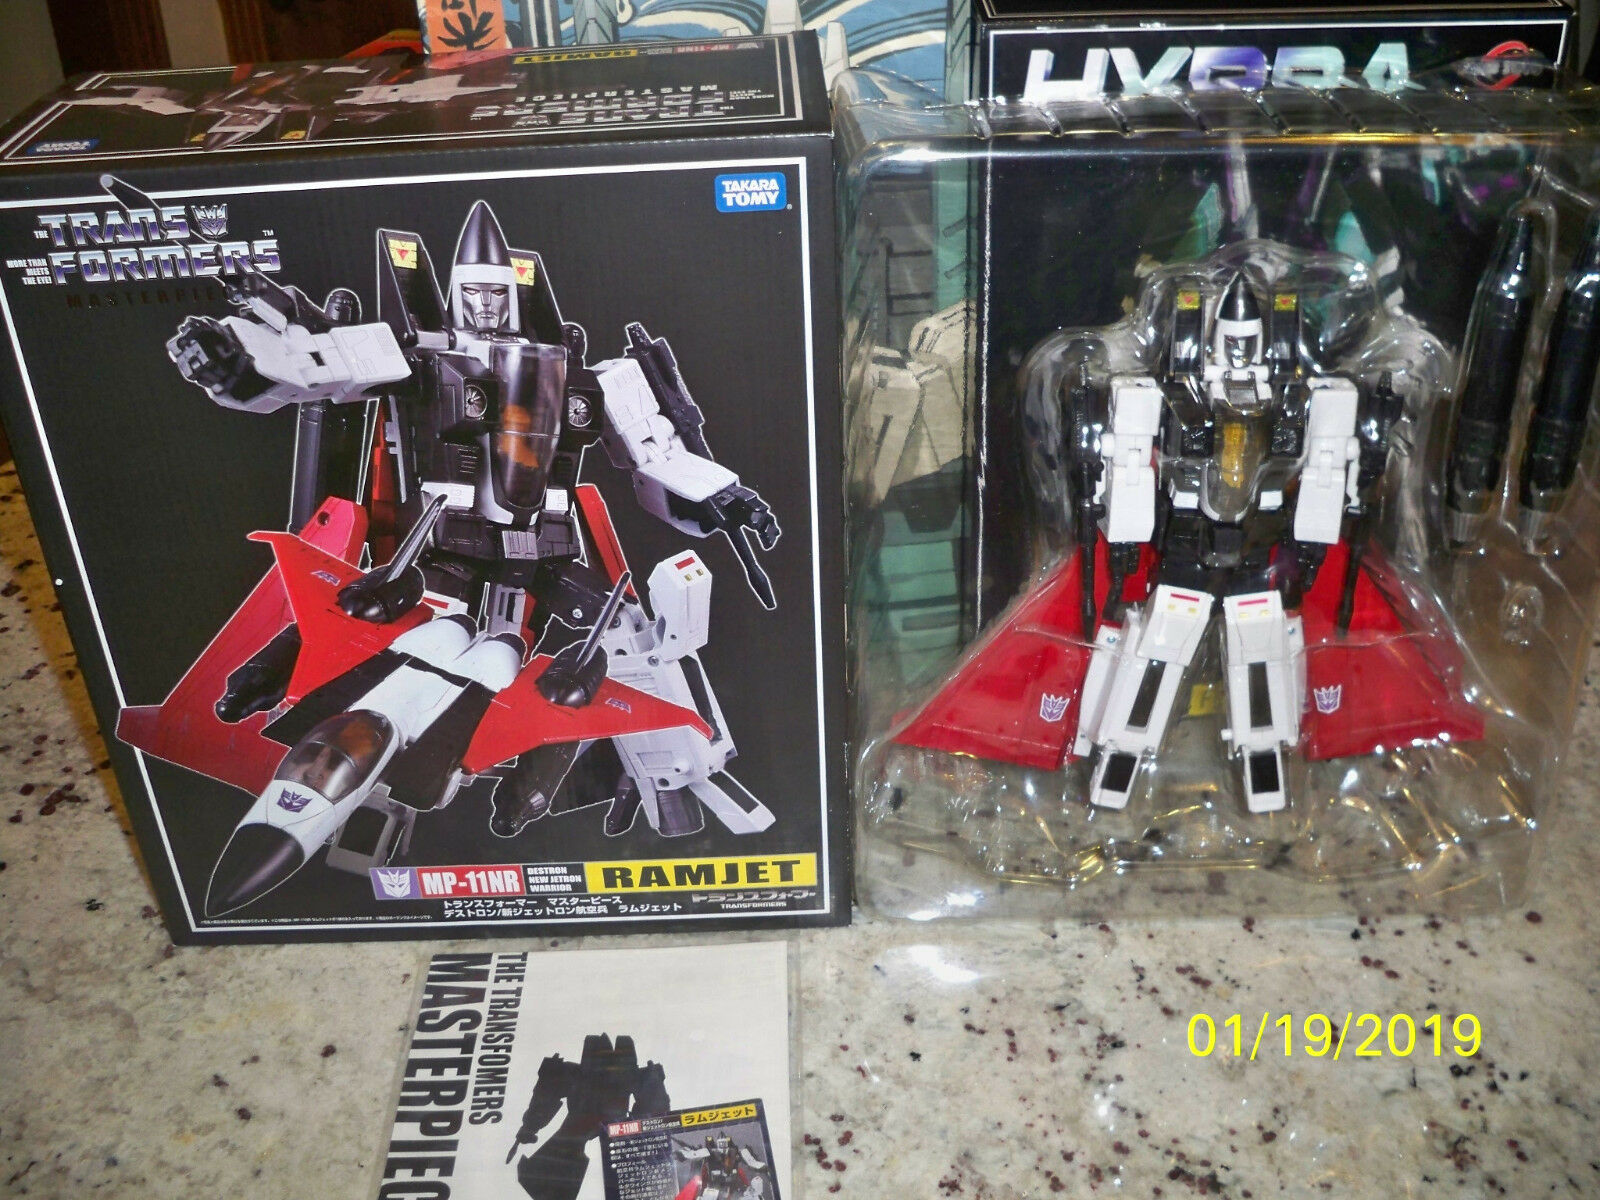 Takara MP-11NR Ramjet New in opened box Official figure